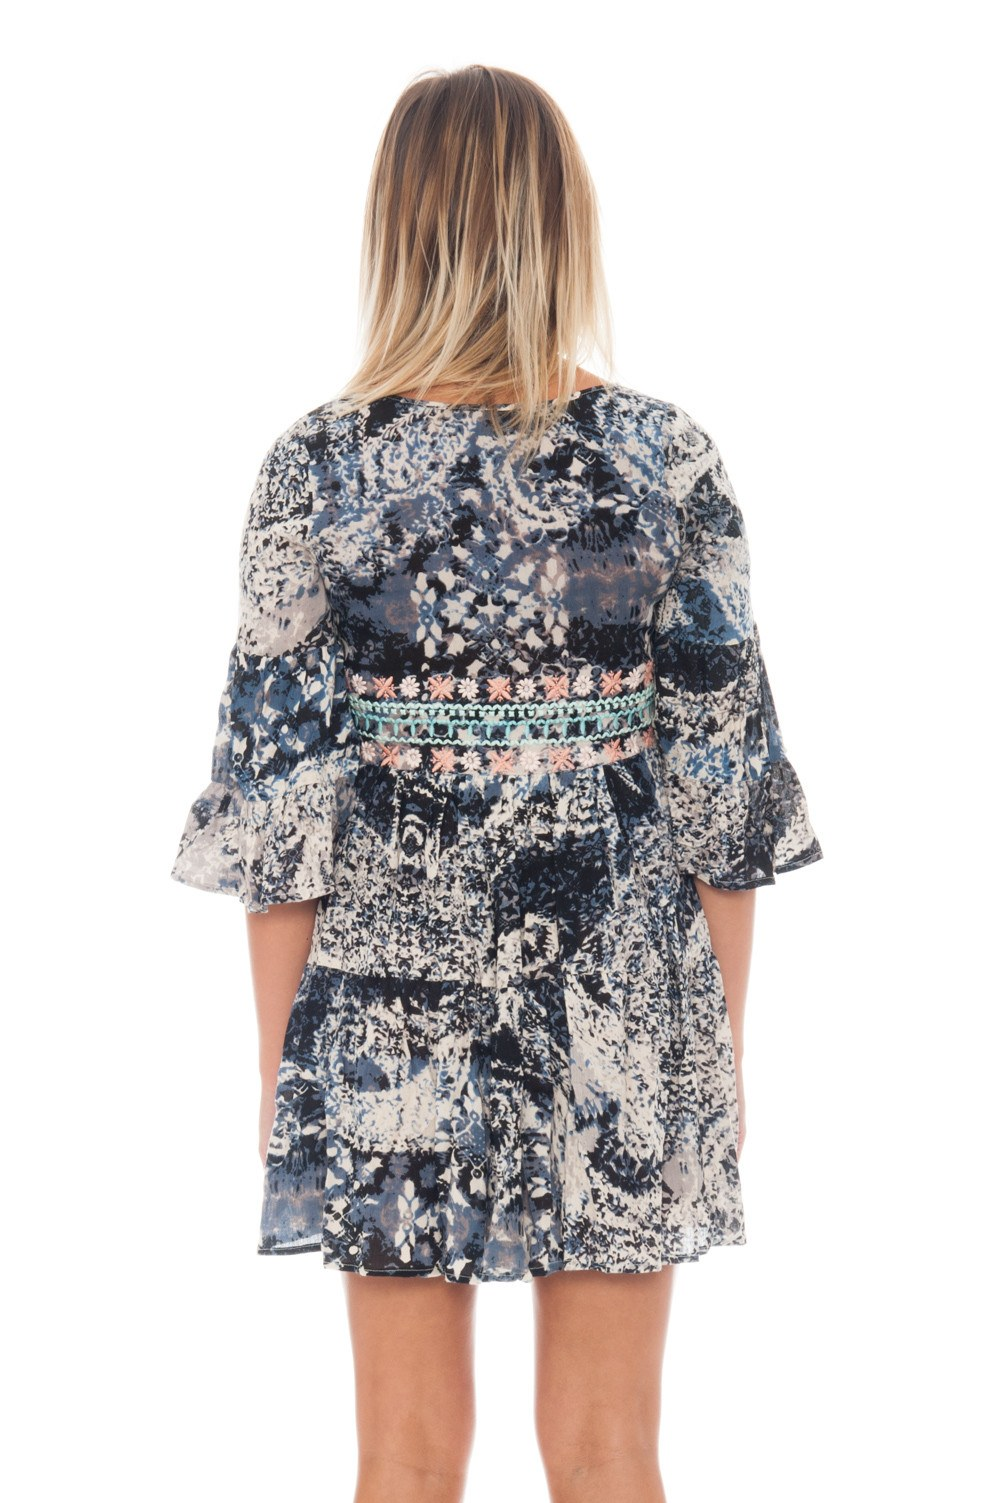 Dress - Print Dress with Sleeve Flare - 3